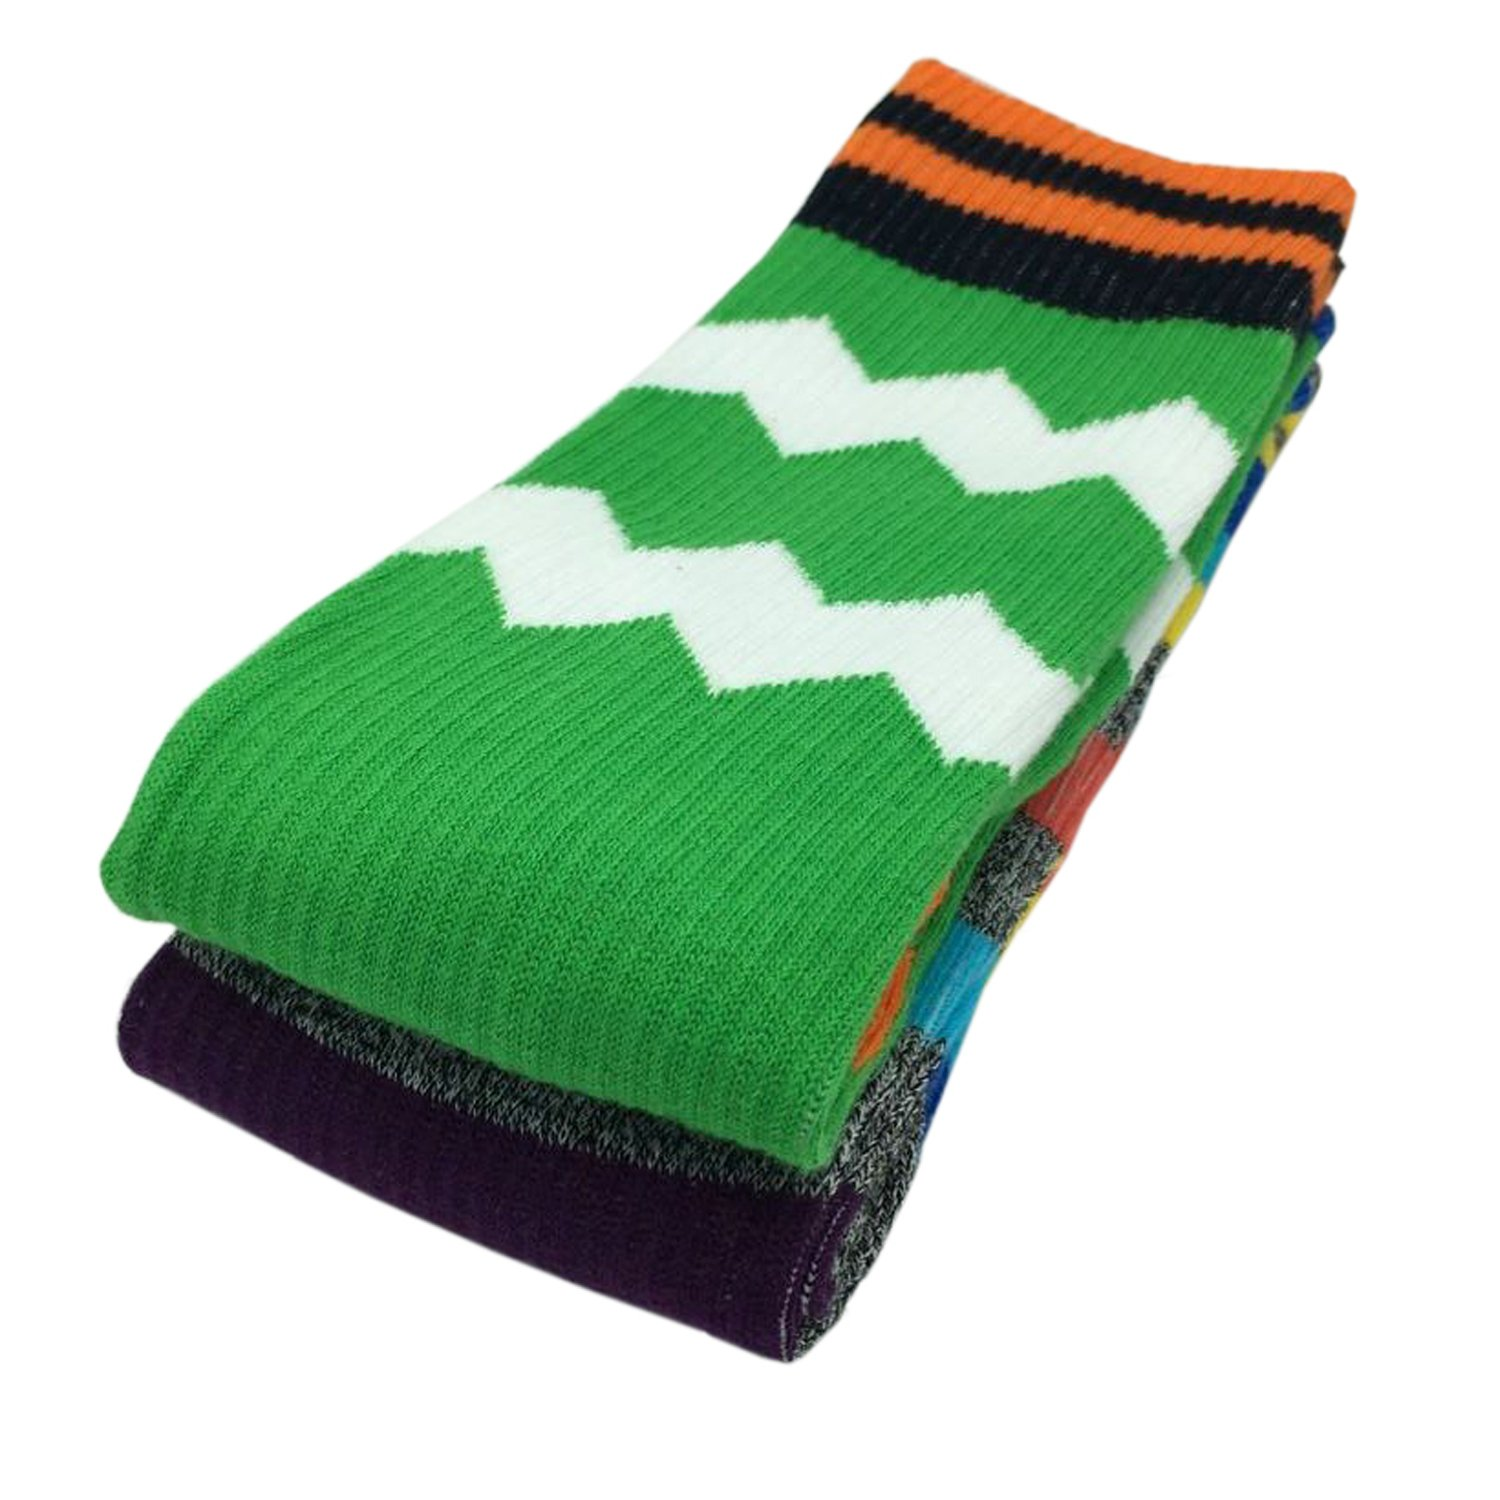 4820e52db4981 Amazon.com: LEADSY Men Colorful Sports Athletic Compression Socks 2 Packs  Fashionable Novelty Funny Argyle Dress Socks: Clothing